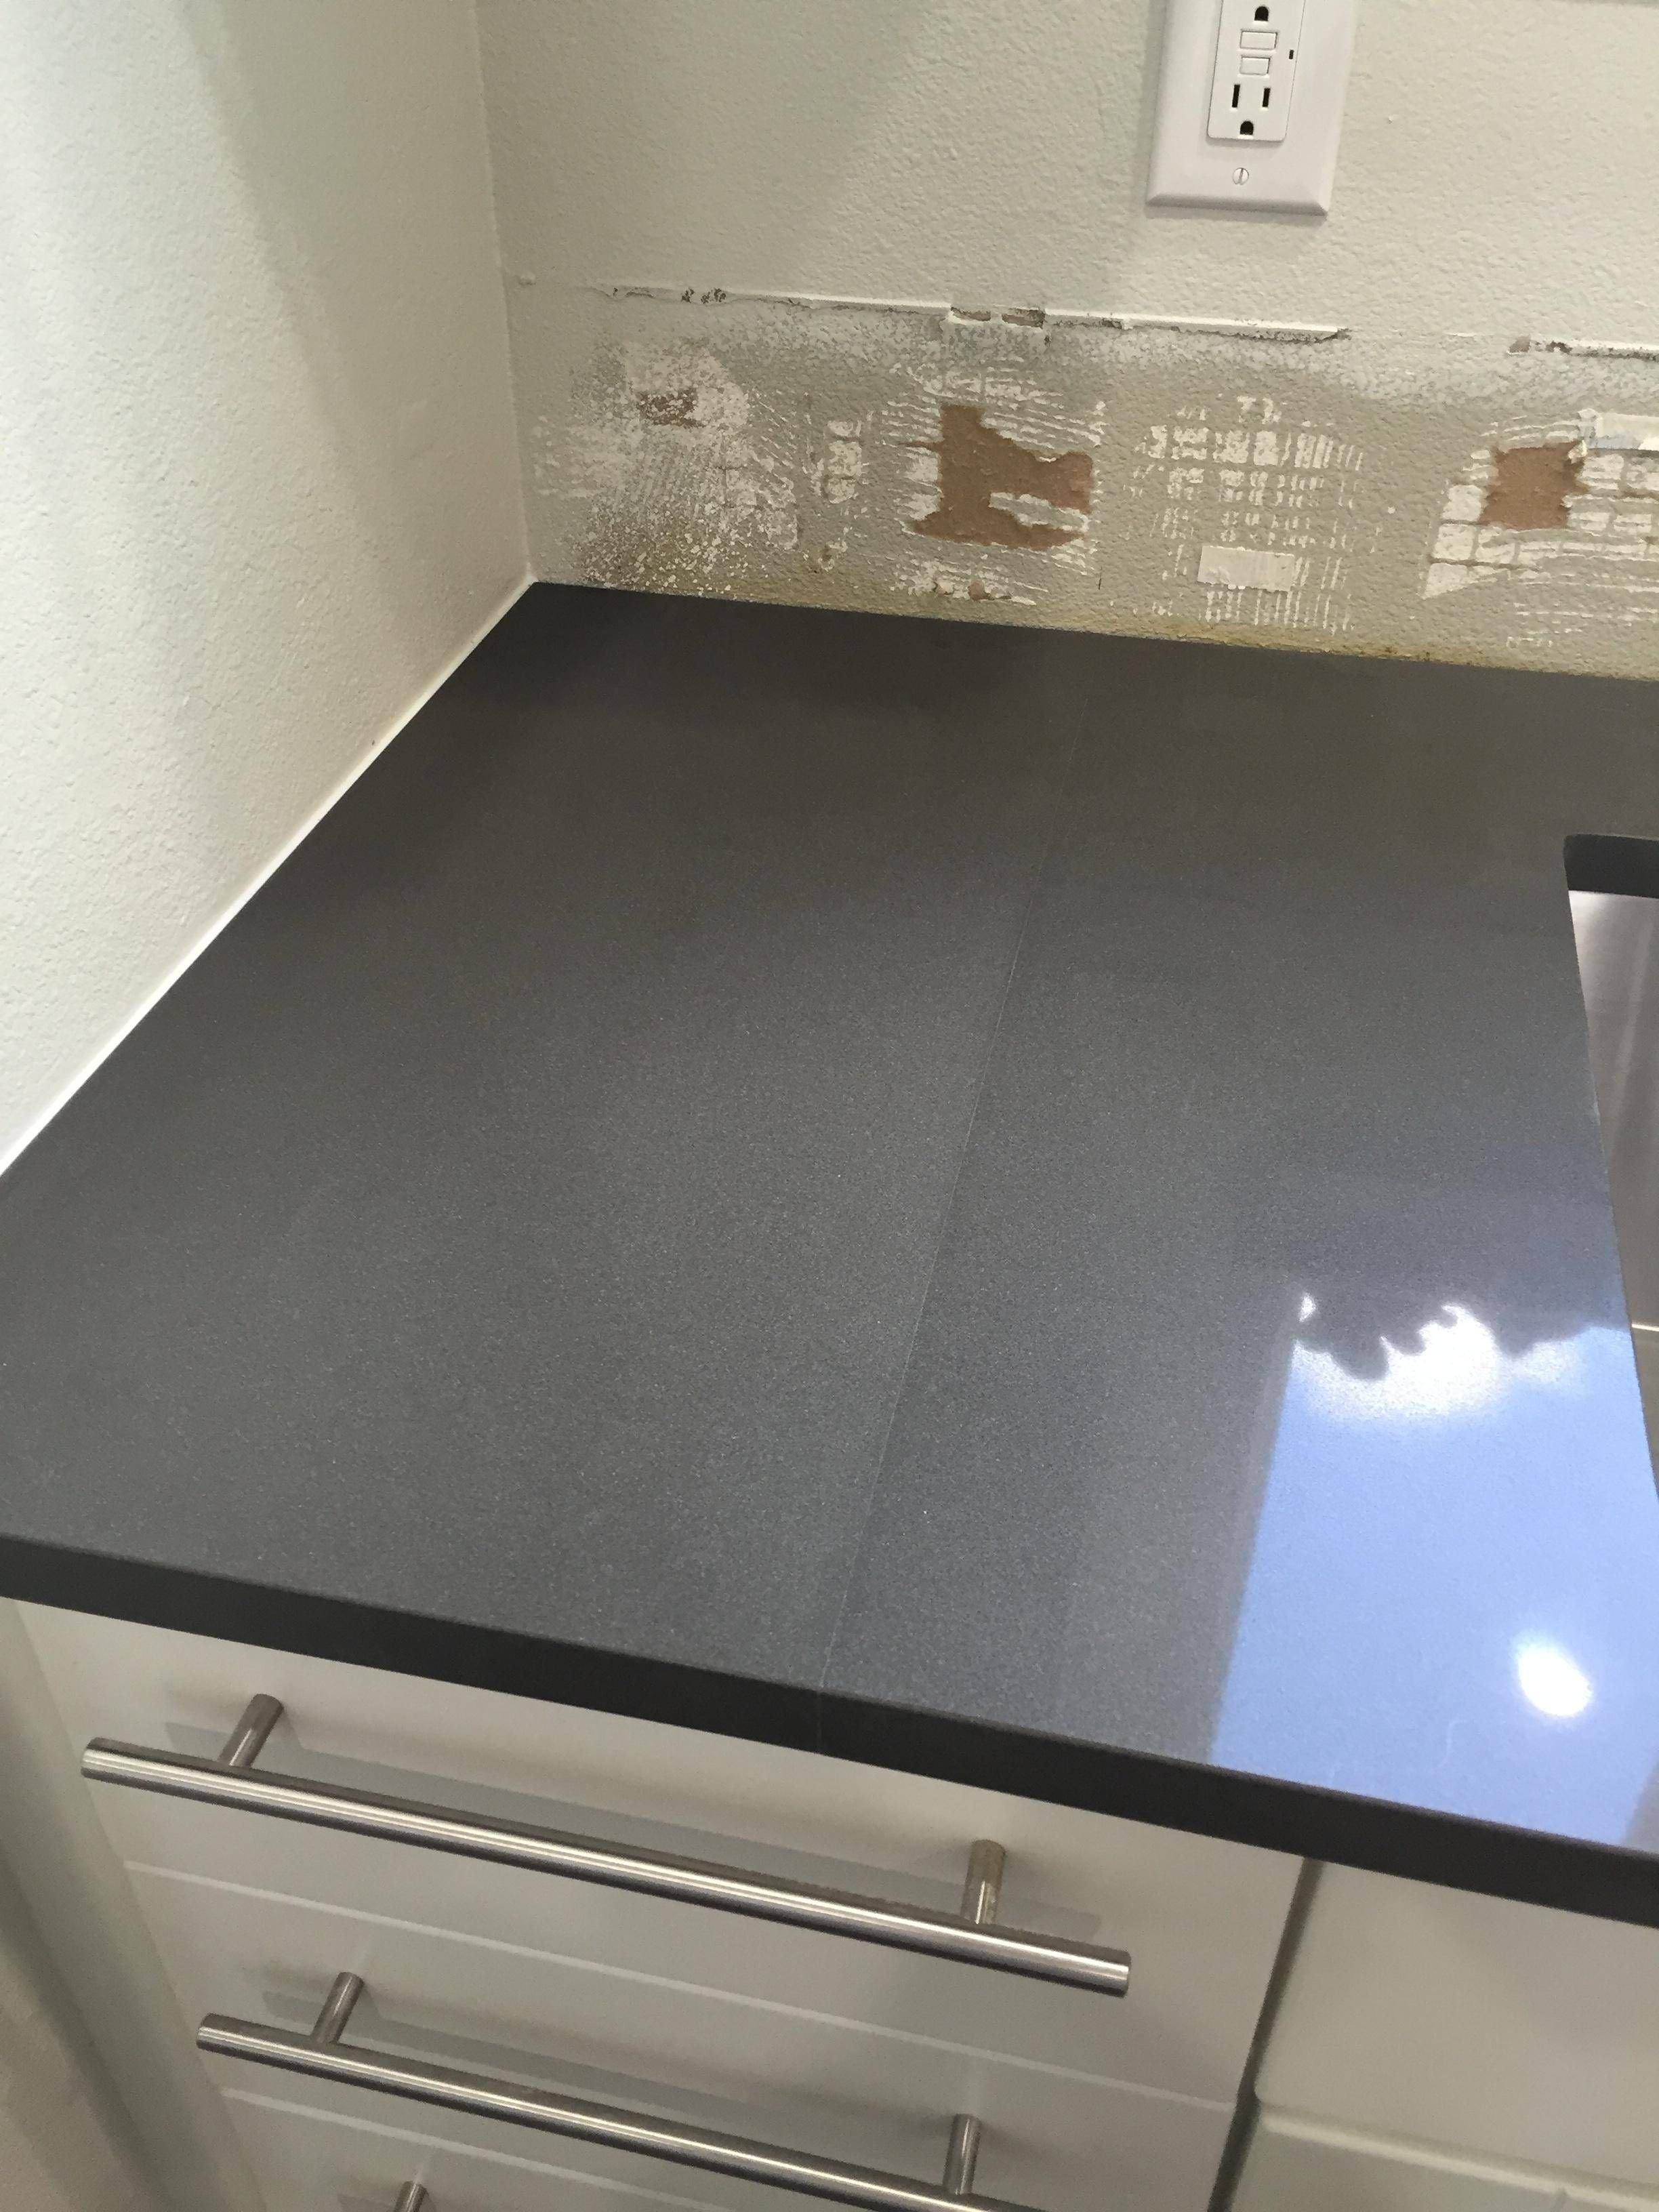 Wall And Counter Seams Kitchen Countertop In 2019